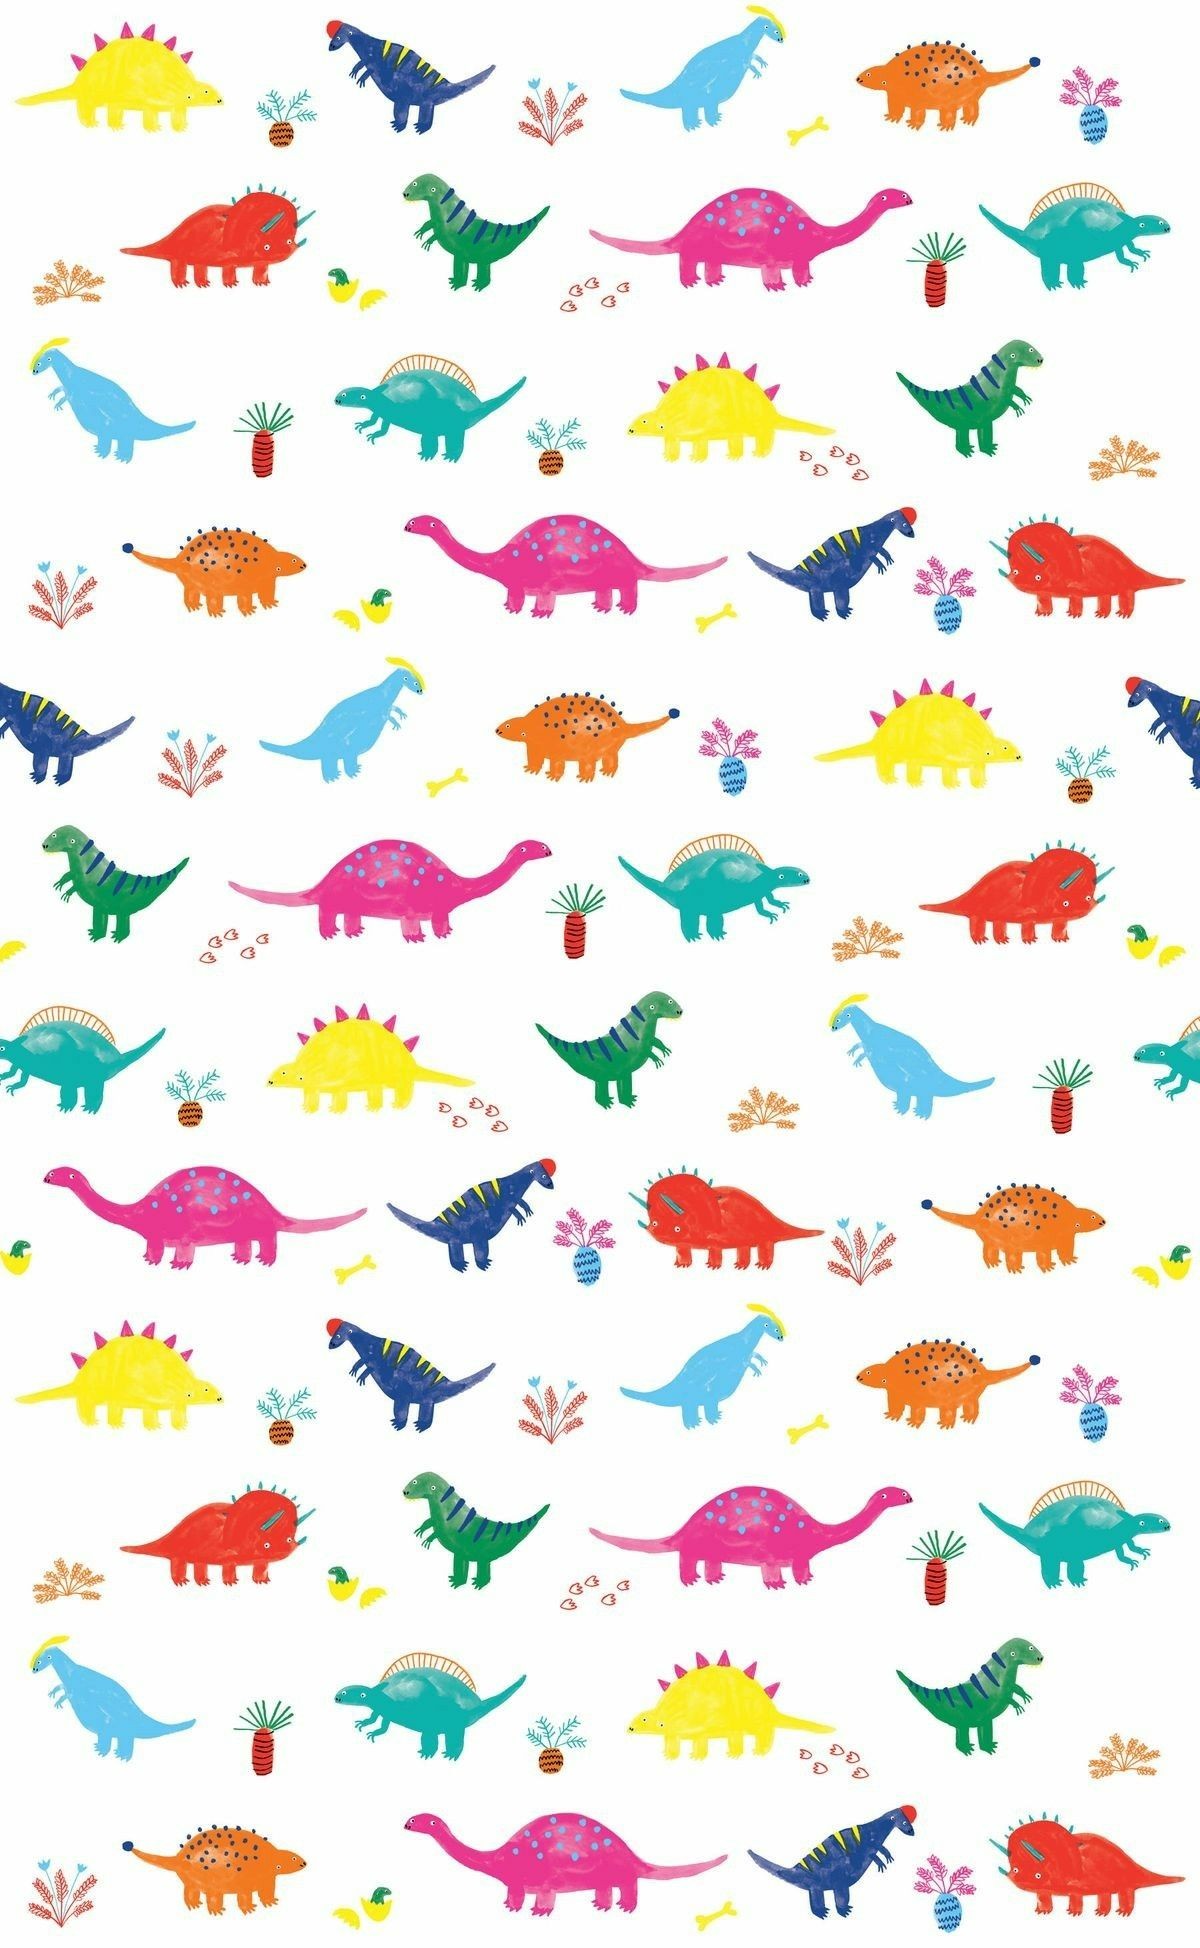 Pin by Sarah on *Backgrounds Pattern wallpaper, Dinosaur